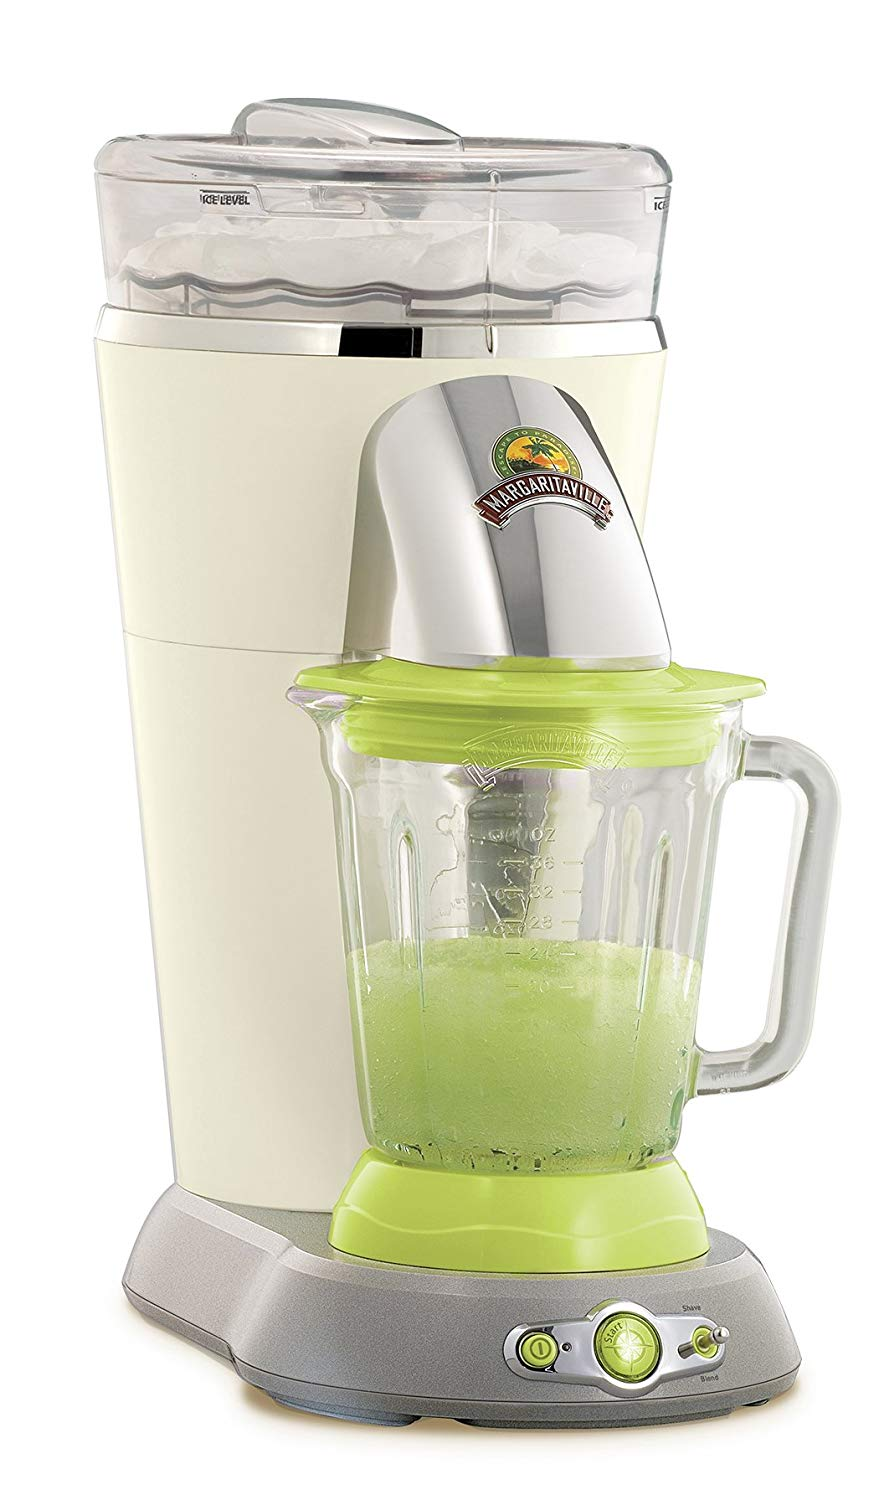 Margaritaville Frozen Concoction [Margarita] Maker - 1 available | Rent for $30